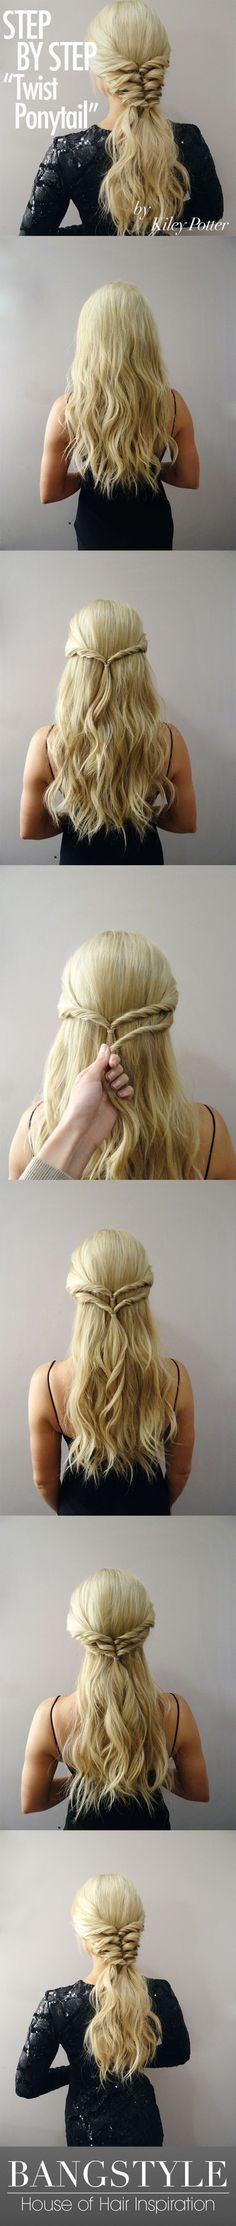 Twist Ponytail Tutorial by Kiley Potter - Bang. Twist Ponytail Tutorial by Kiley Potter – Bangstyle This gives a partial braid look, very pretty. Ponytail Tutorial, Half Updo Tutorial, Prom Hair Tutorial, Twist Ponytail, Ponytail Easy, Ponytail Styles, Perfect Ponytail, Perfect Hairstyle, Braids For Long Hair